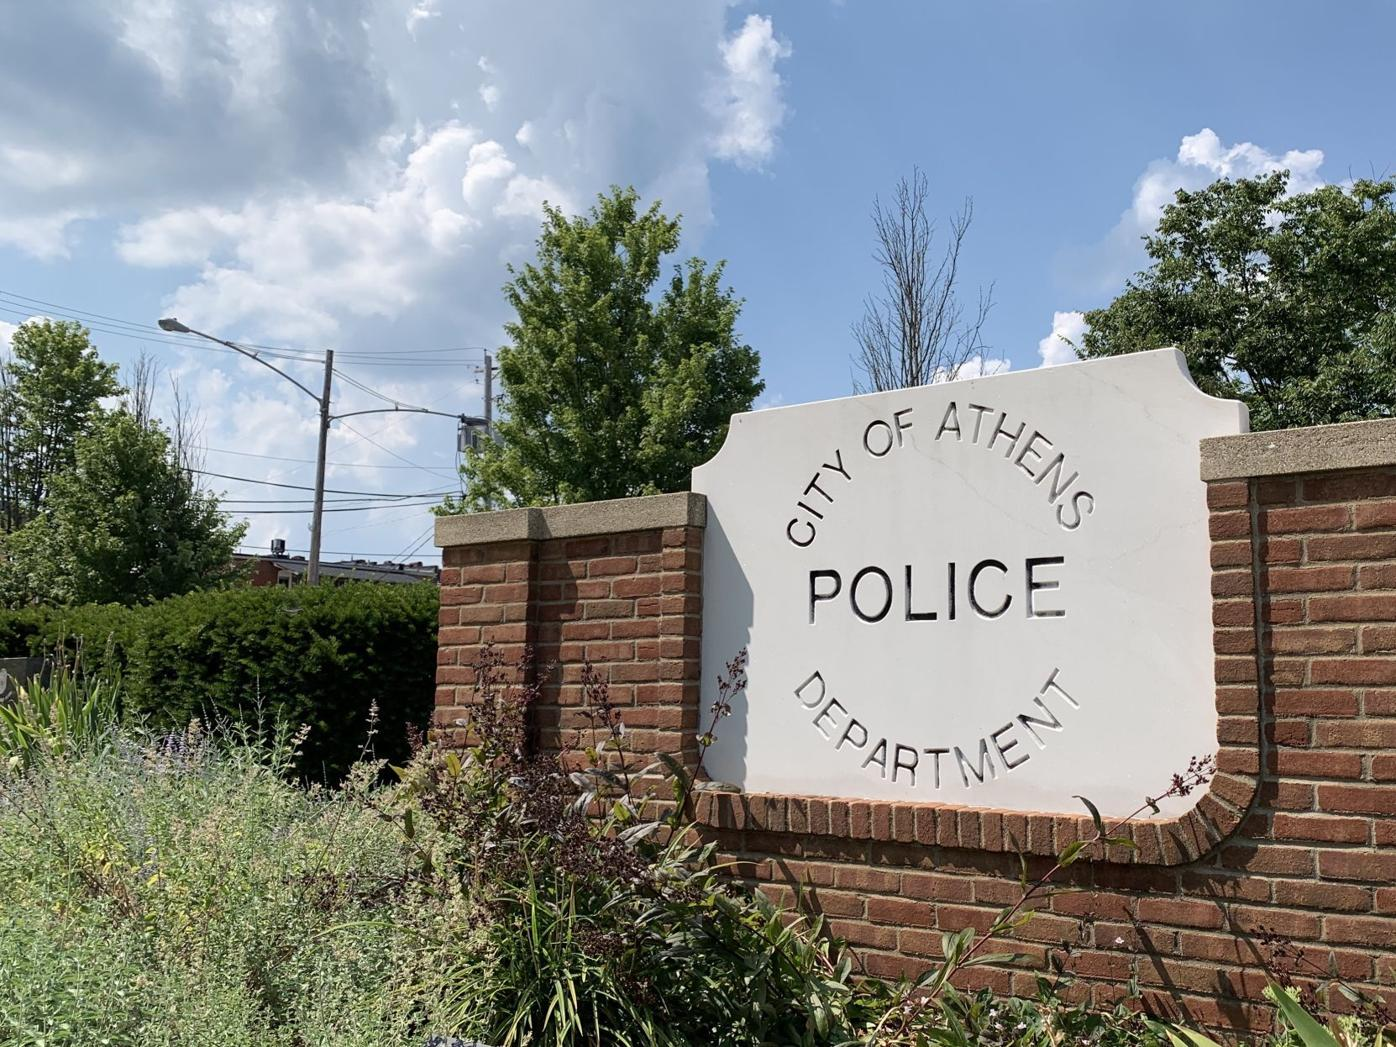 Athens Police Department